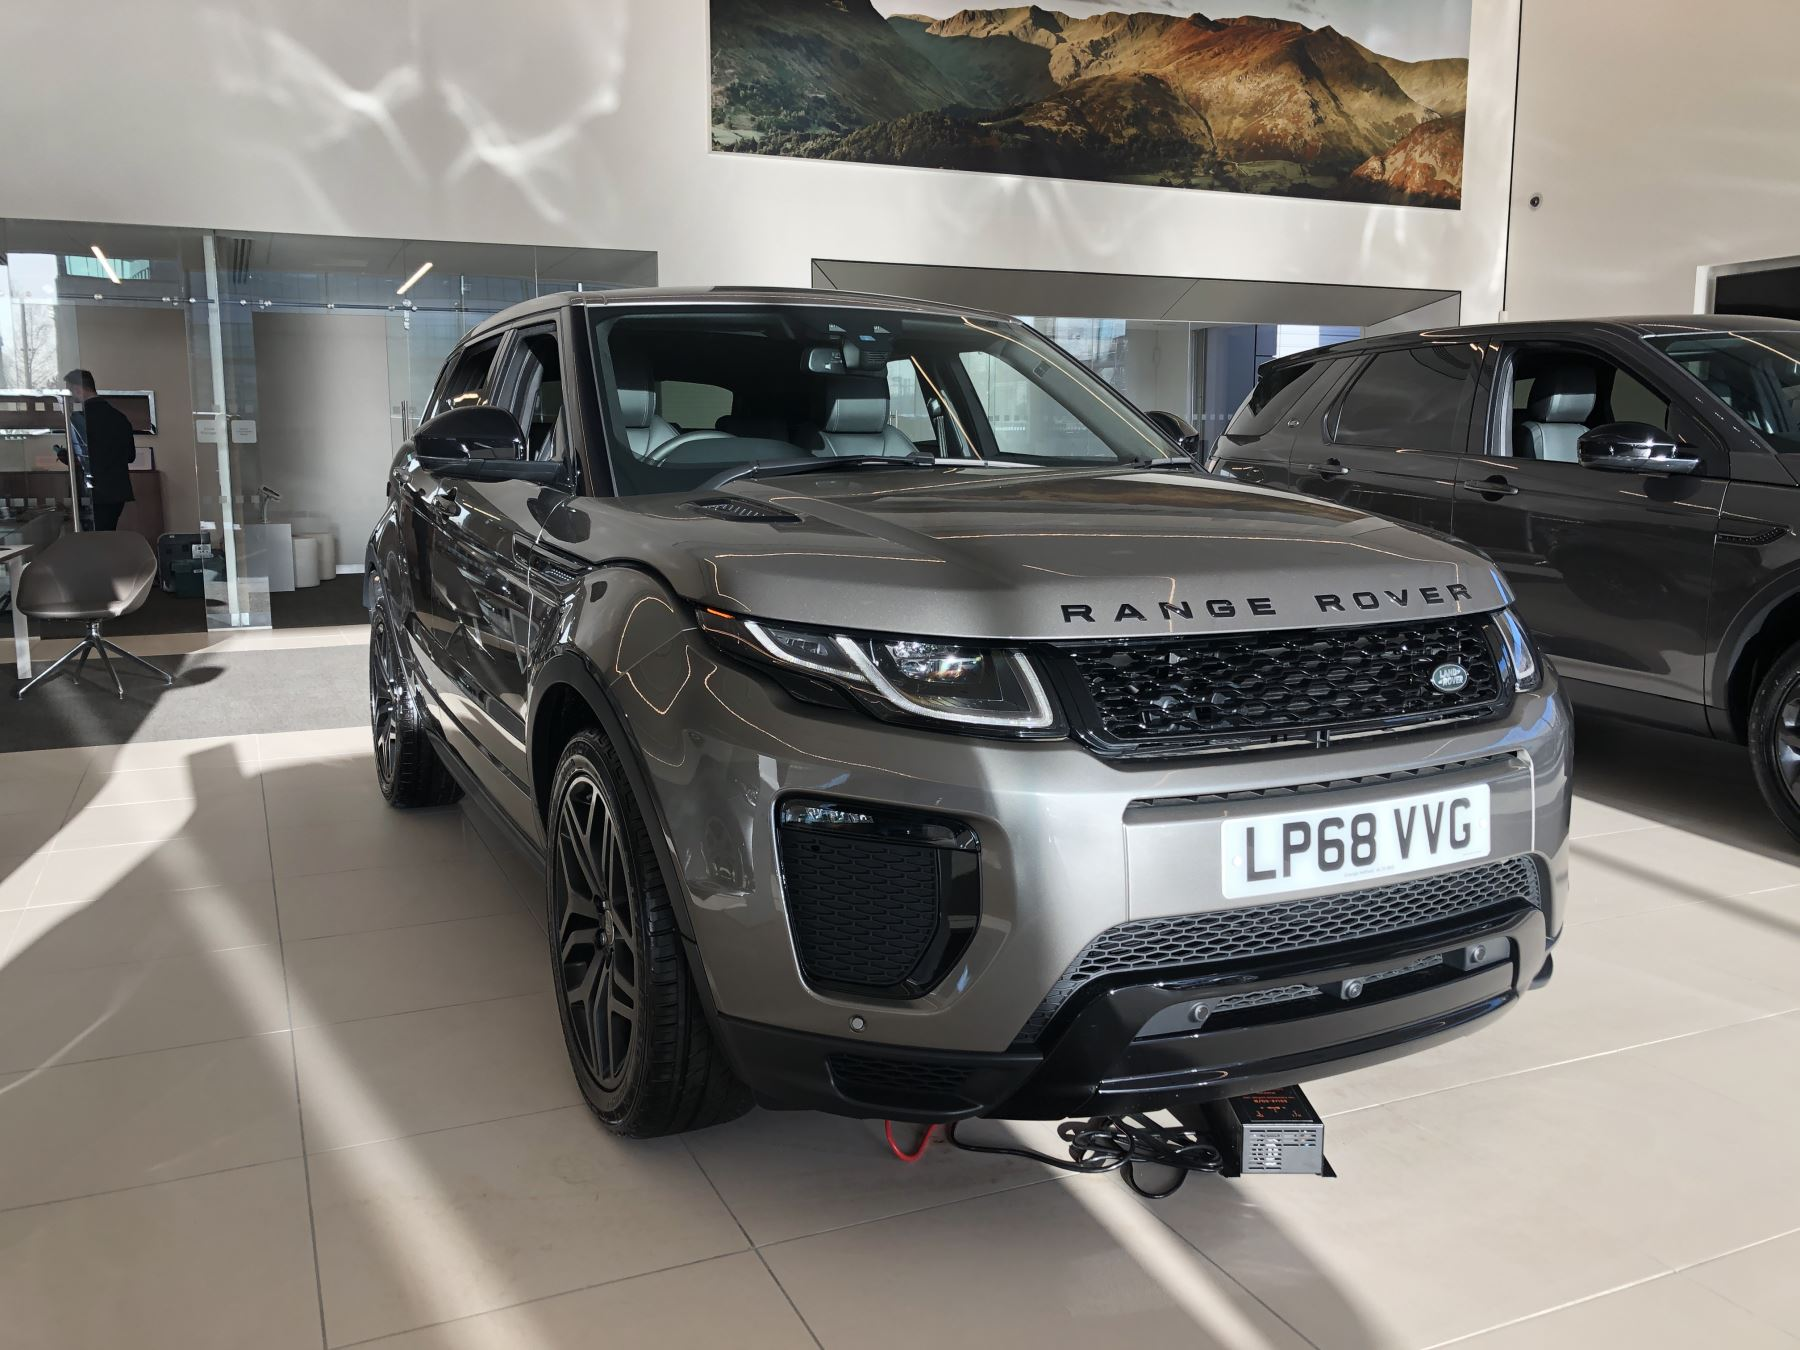 Land Rover Range Rover Evoque 2.0 SD4 HSE Dynamic 5dr Diesel Automatic Hatchback (2018)